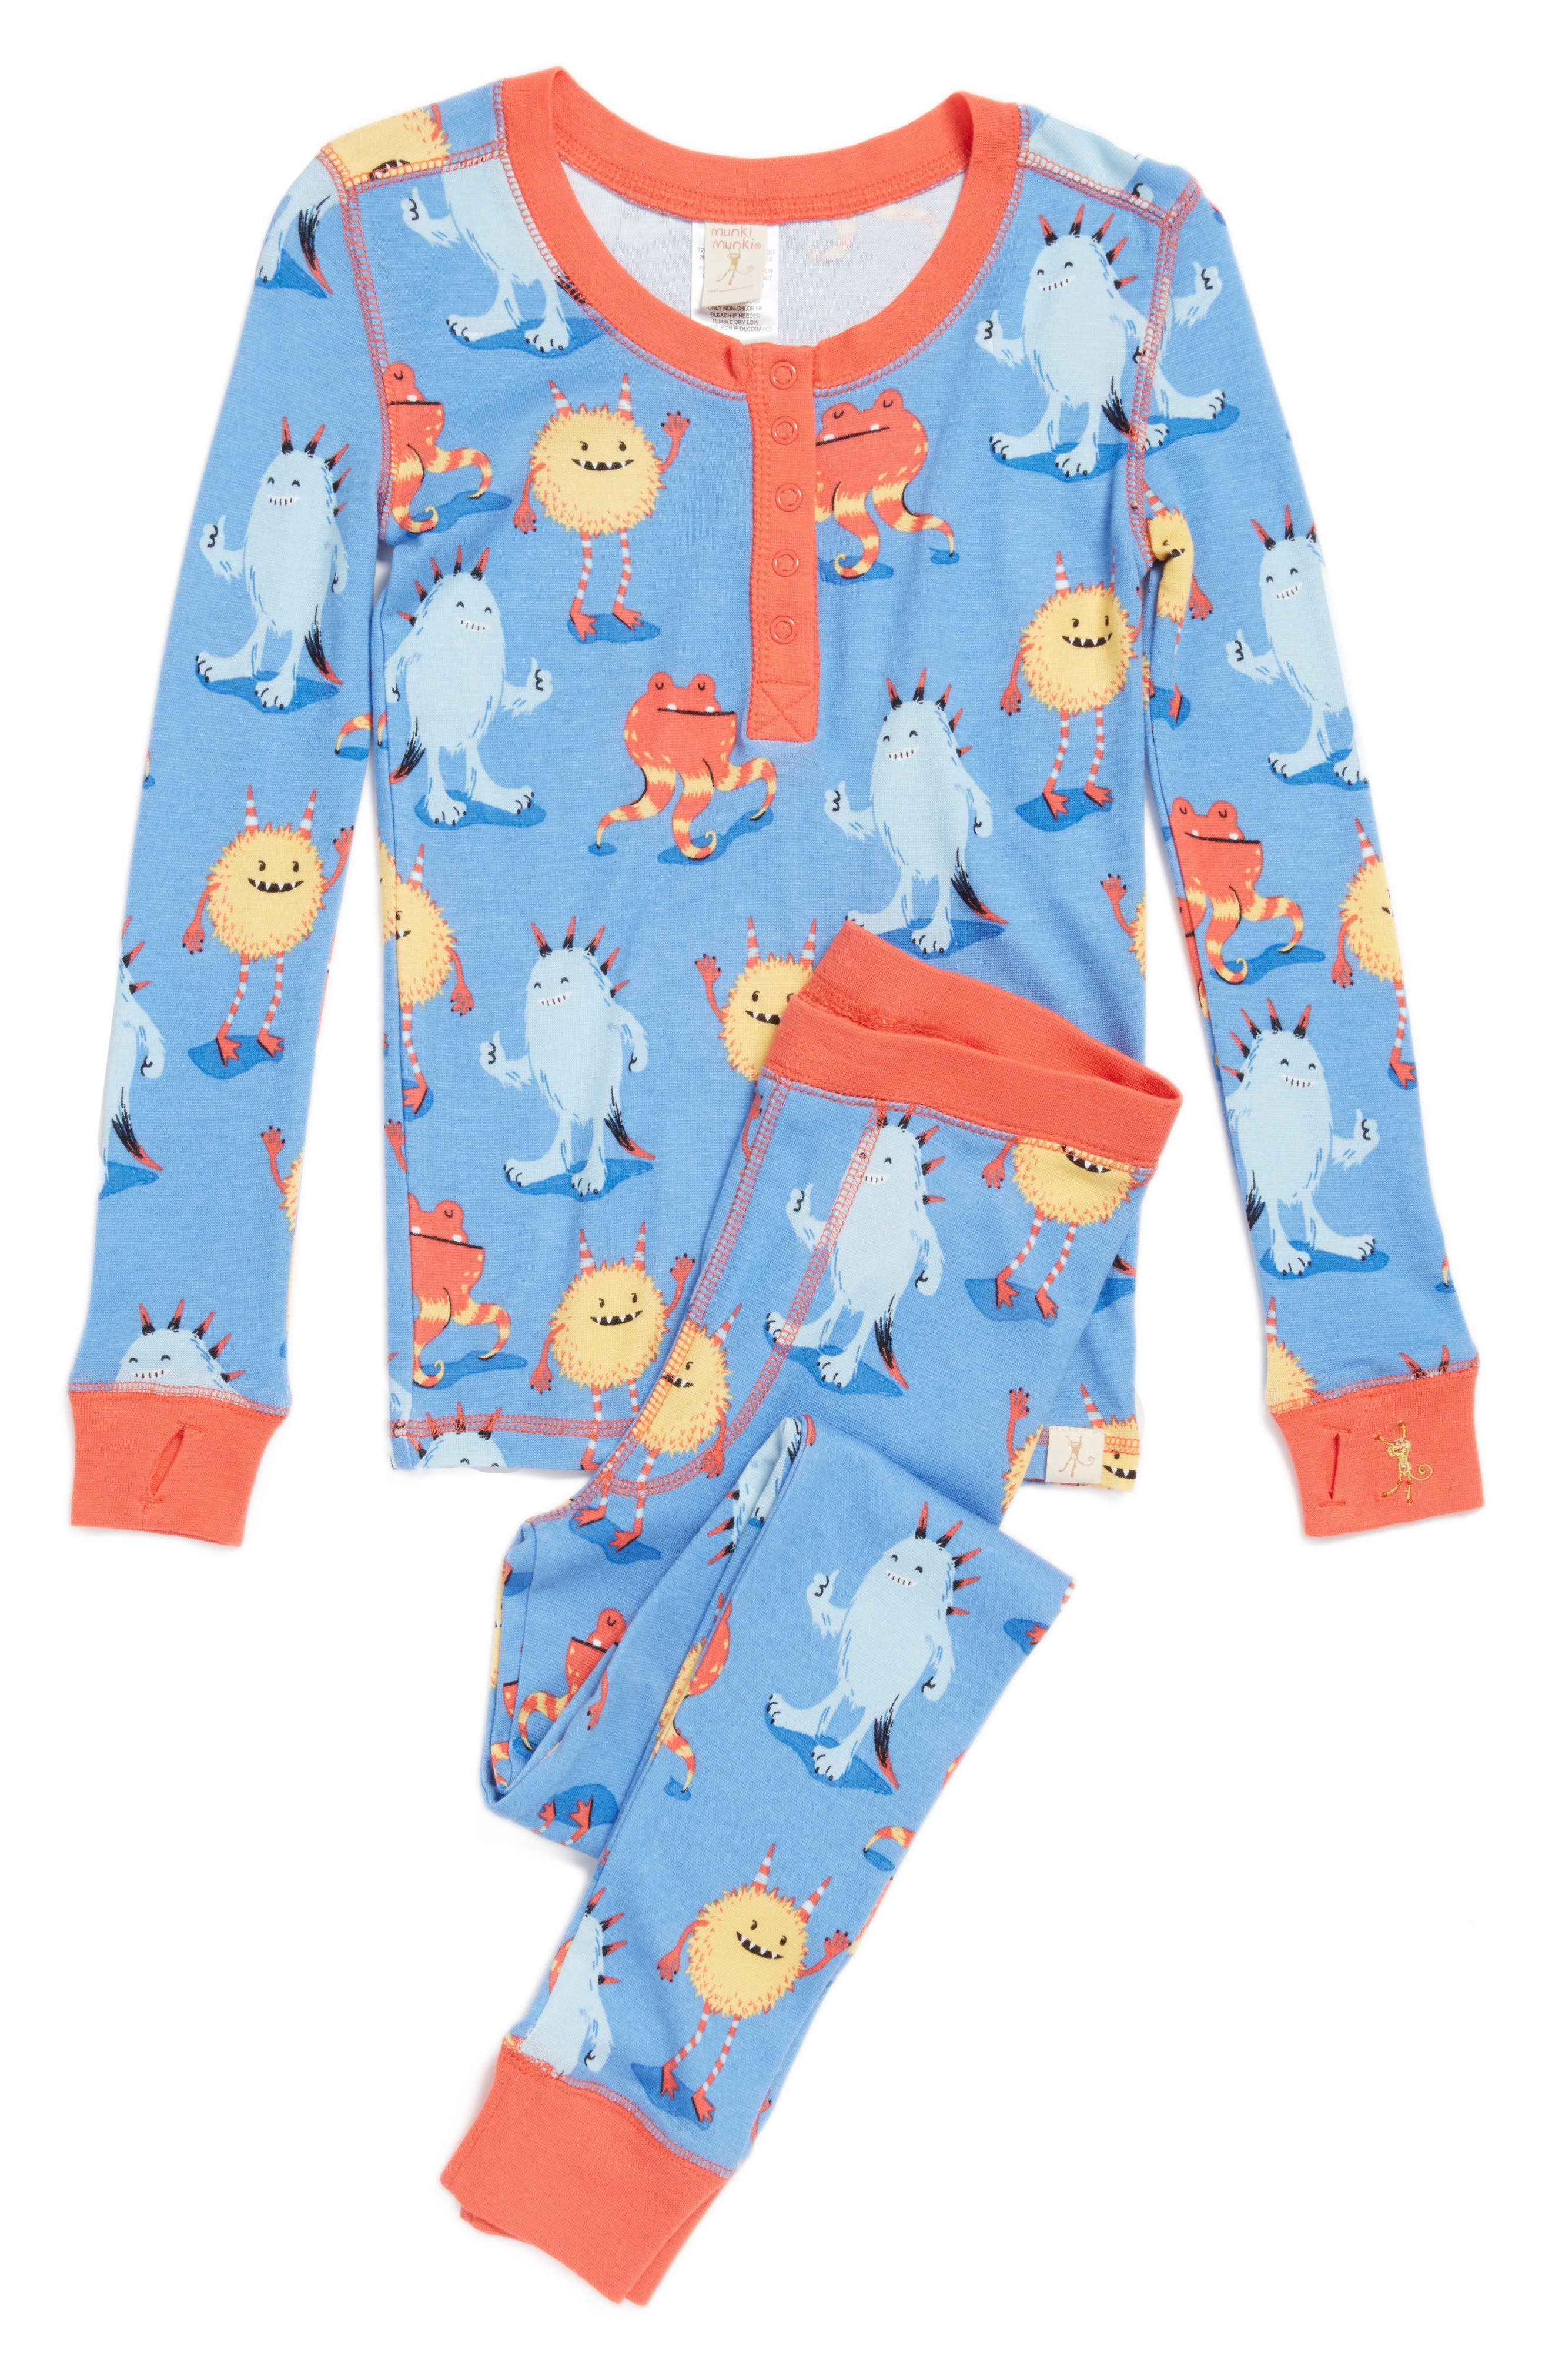 MUNKI MUNKI Fur Monsters Fitted Two-Piece Pajamas